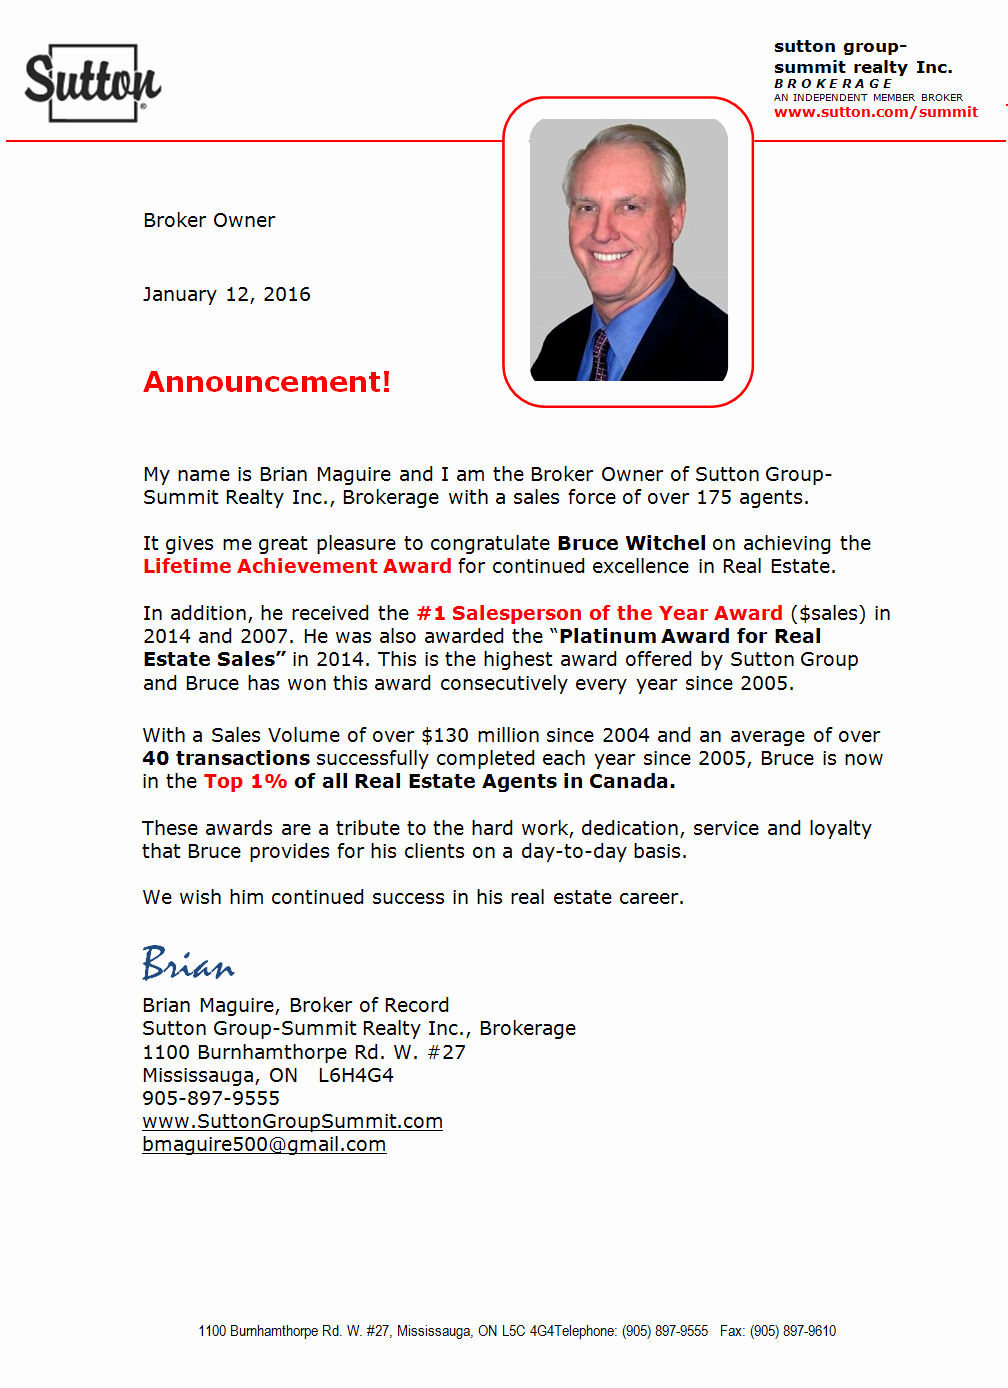 Real Estate Agent Introduction Letter Awesome Announcement Congratulations Mississauga Real Estate